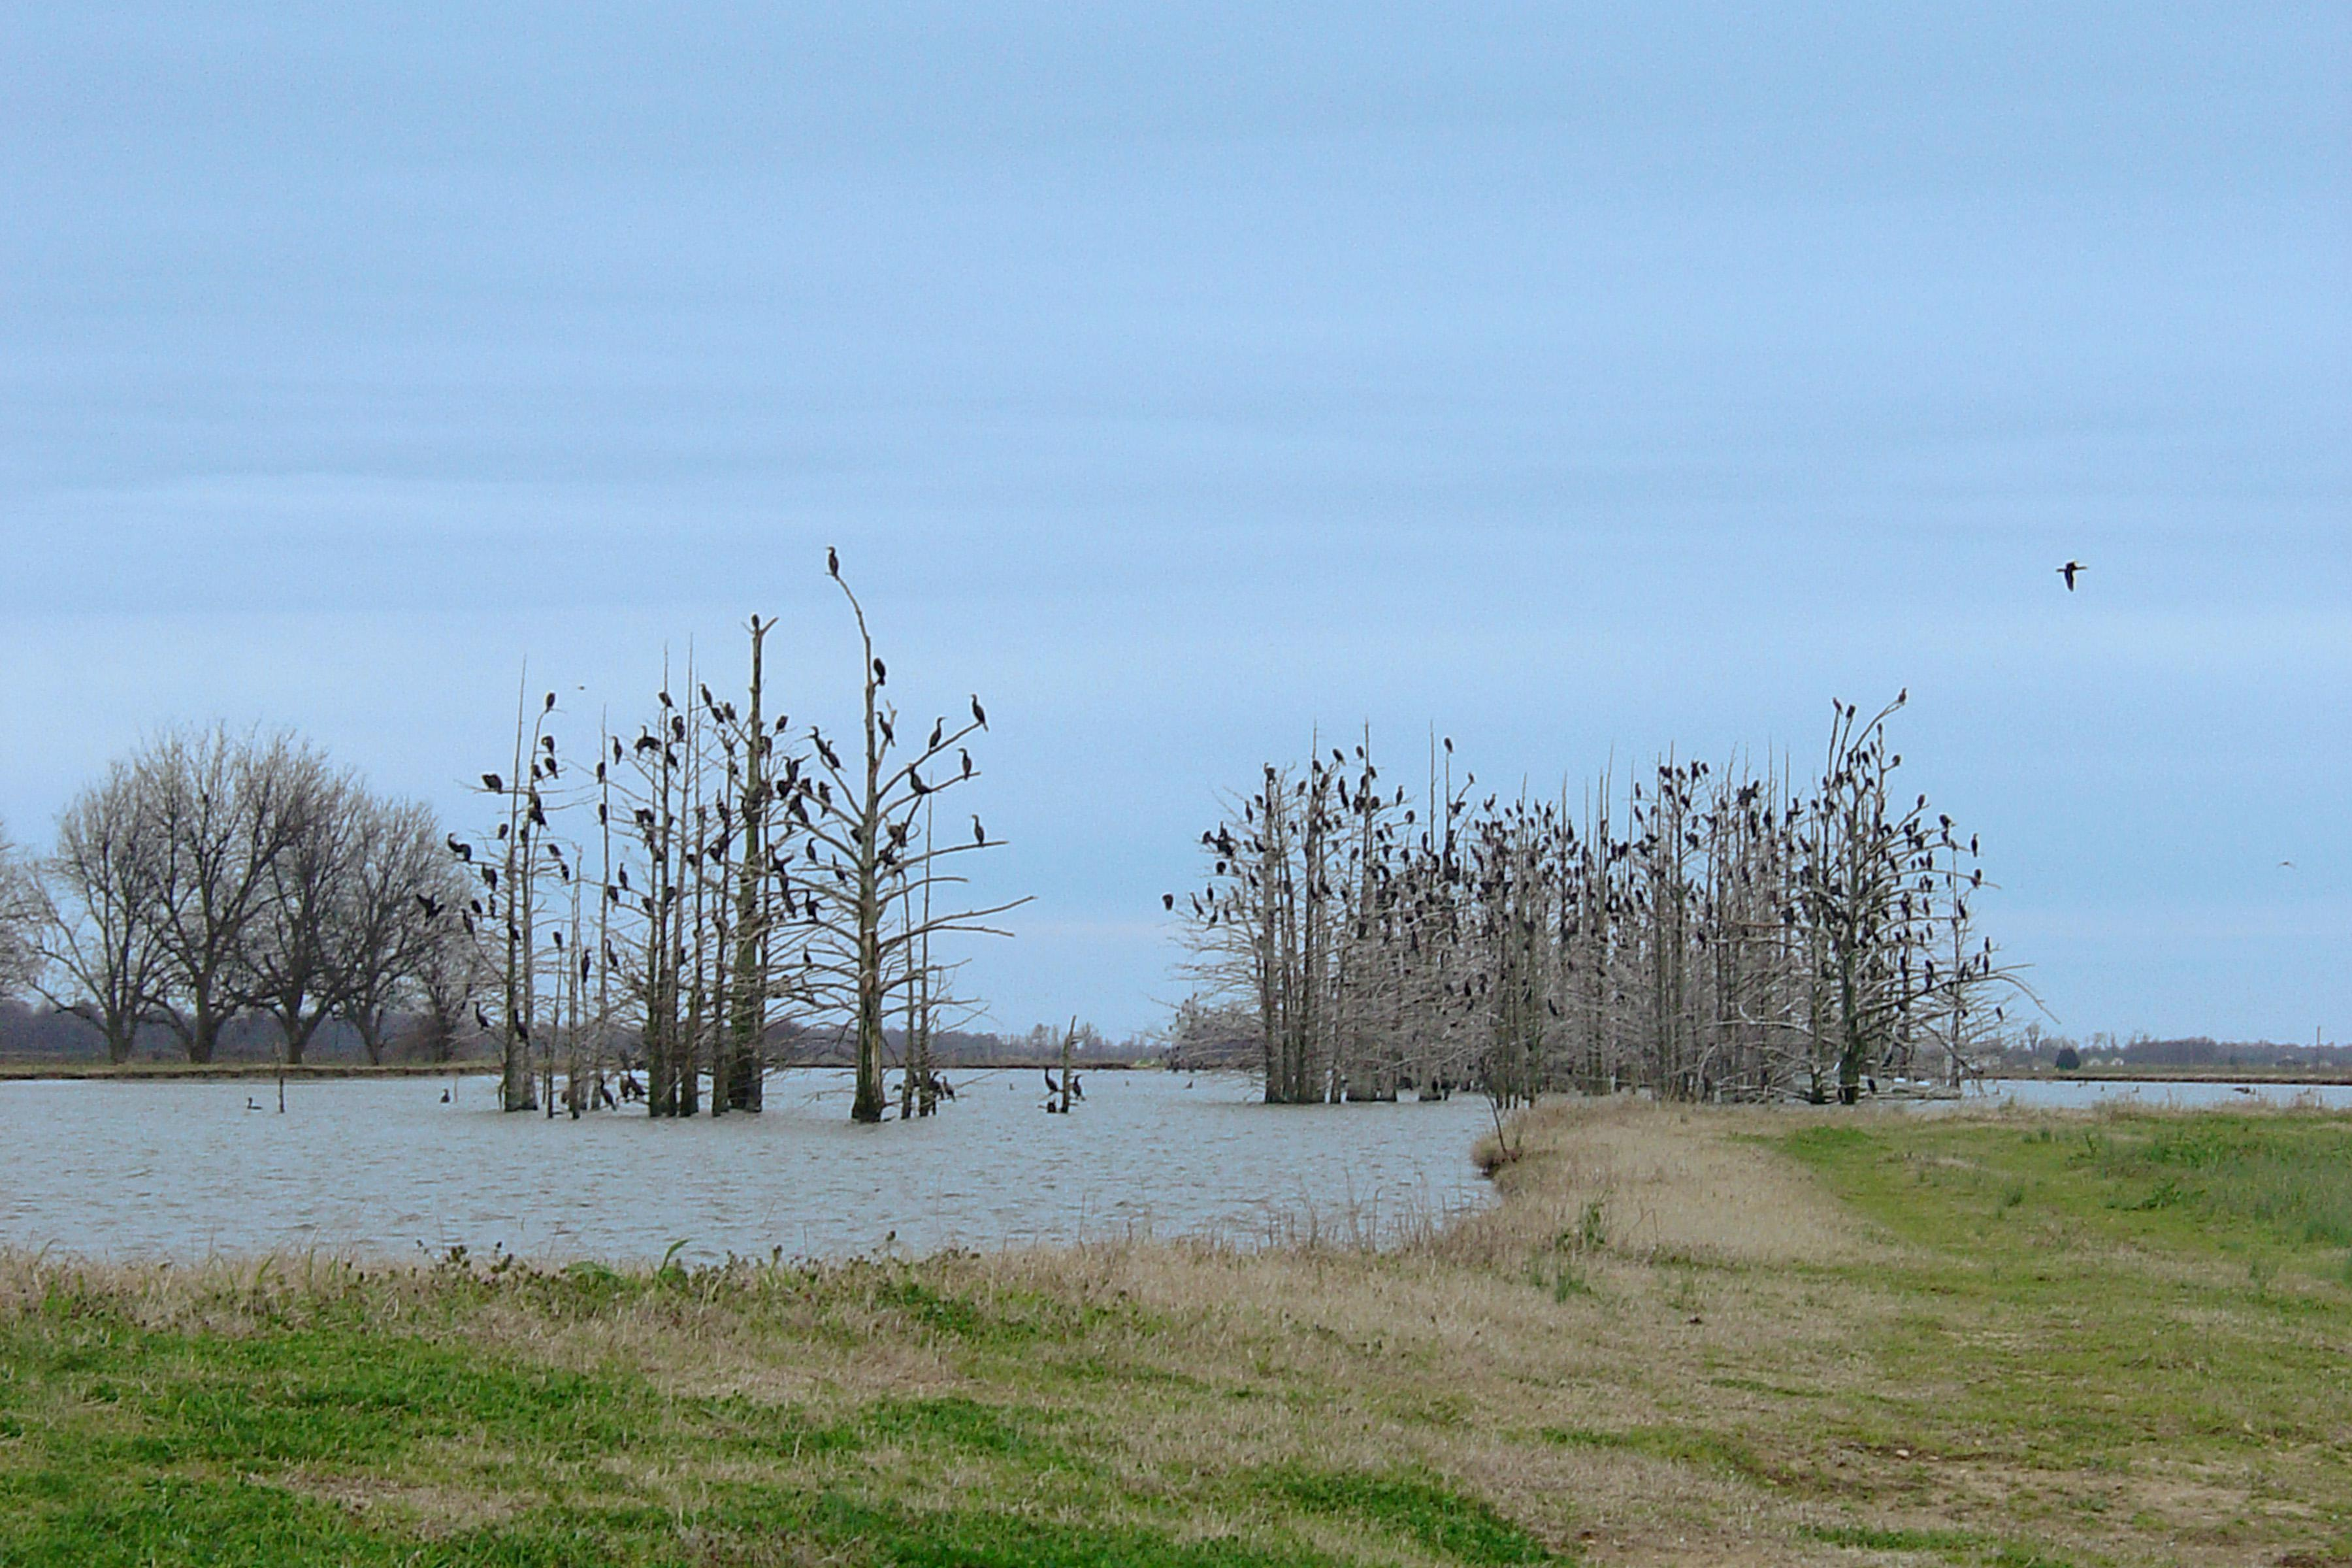 Large groups of cormorants typically roost at night in clusters of trees, such as these, and spend their days fishing in natural lakes, rivers and catfish ponds, to the dismay of Mississippi's catfish producers. (File photo by MSU Extension Service)